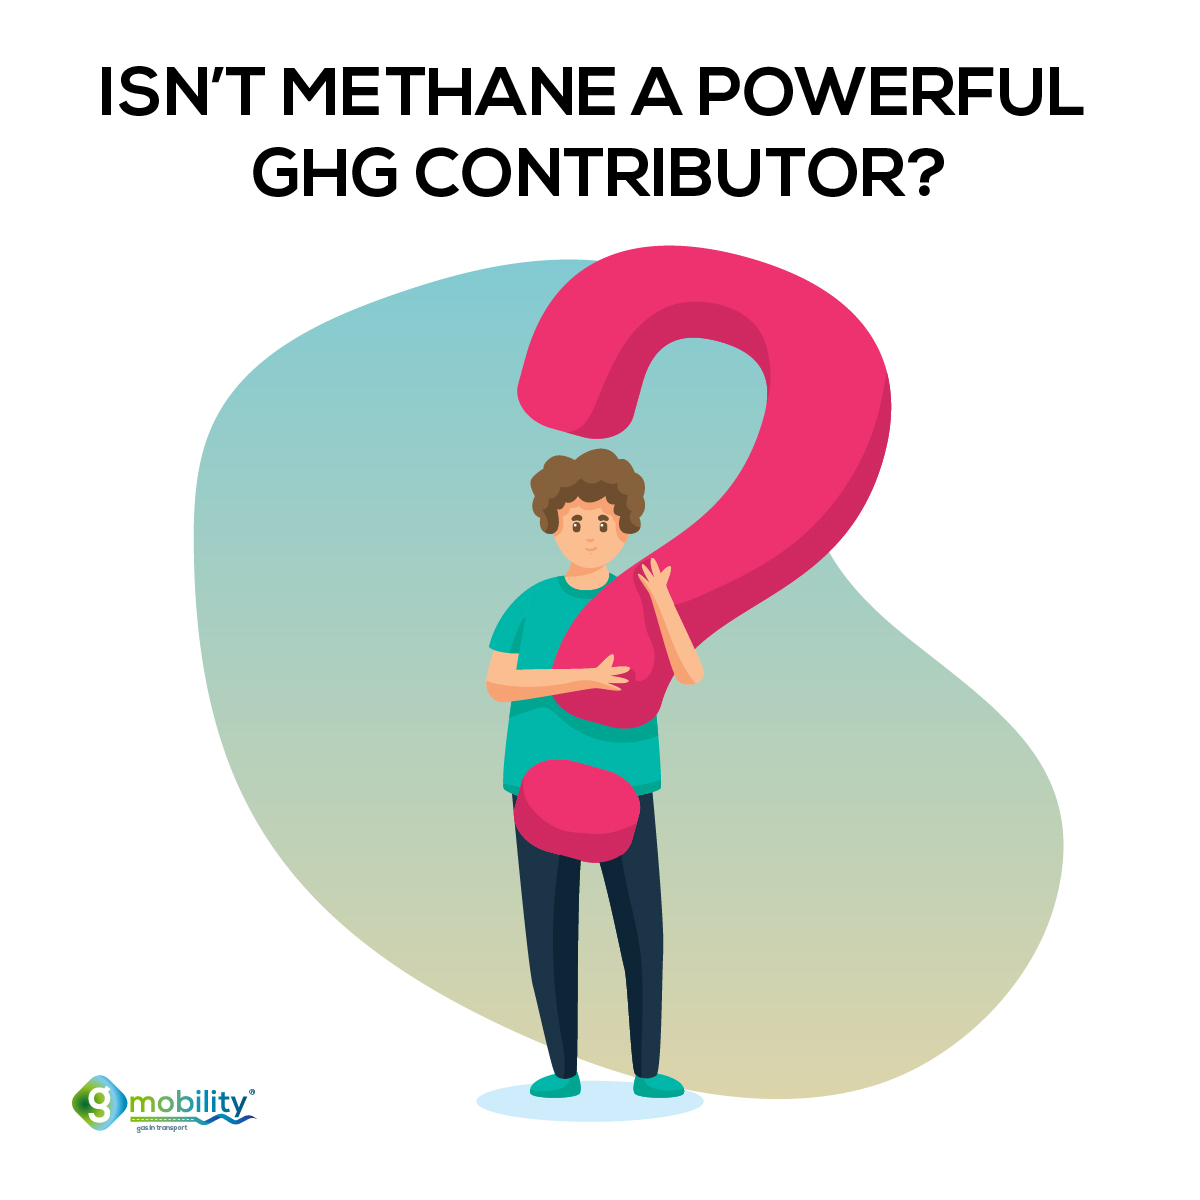 Methane (CH4) is the primary component of both natural and renewable gas. As such, it is important to understand what it is and how it affects the environment or our climate.